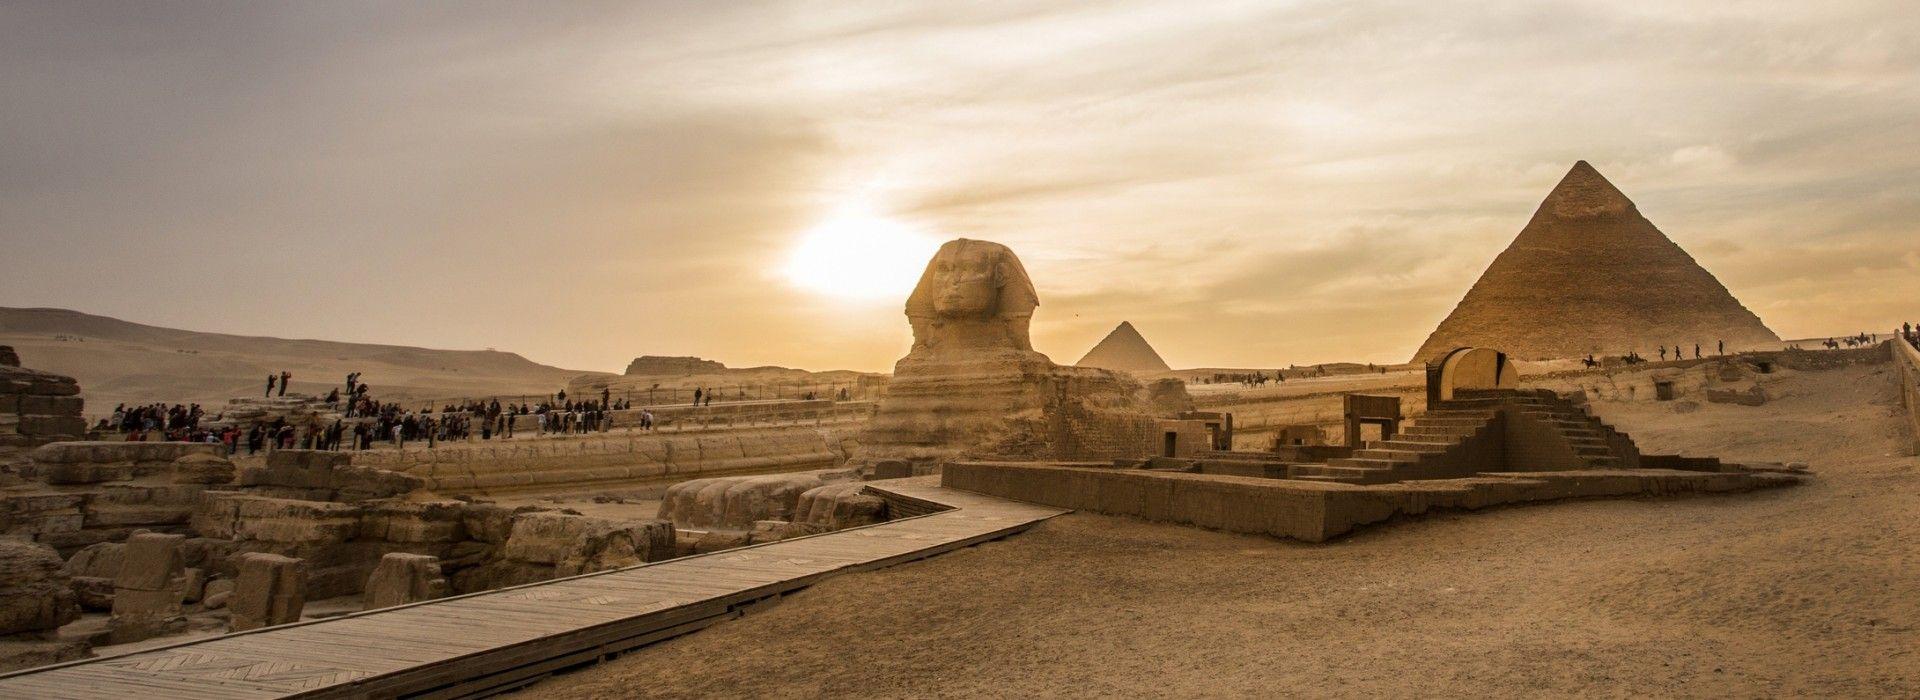 The Sphinx Cairo